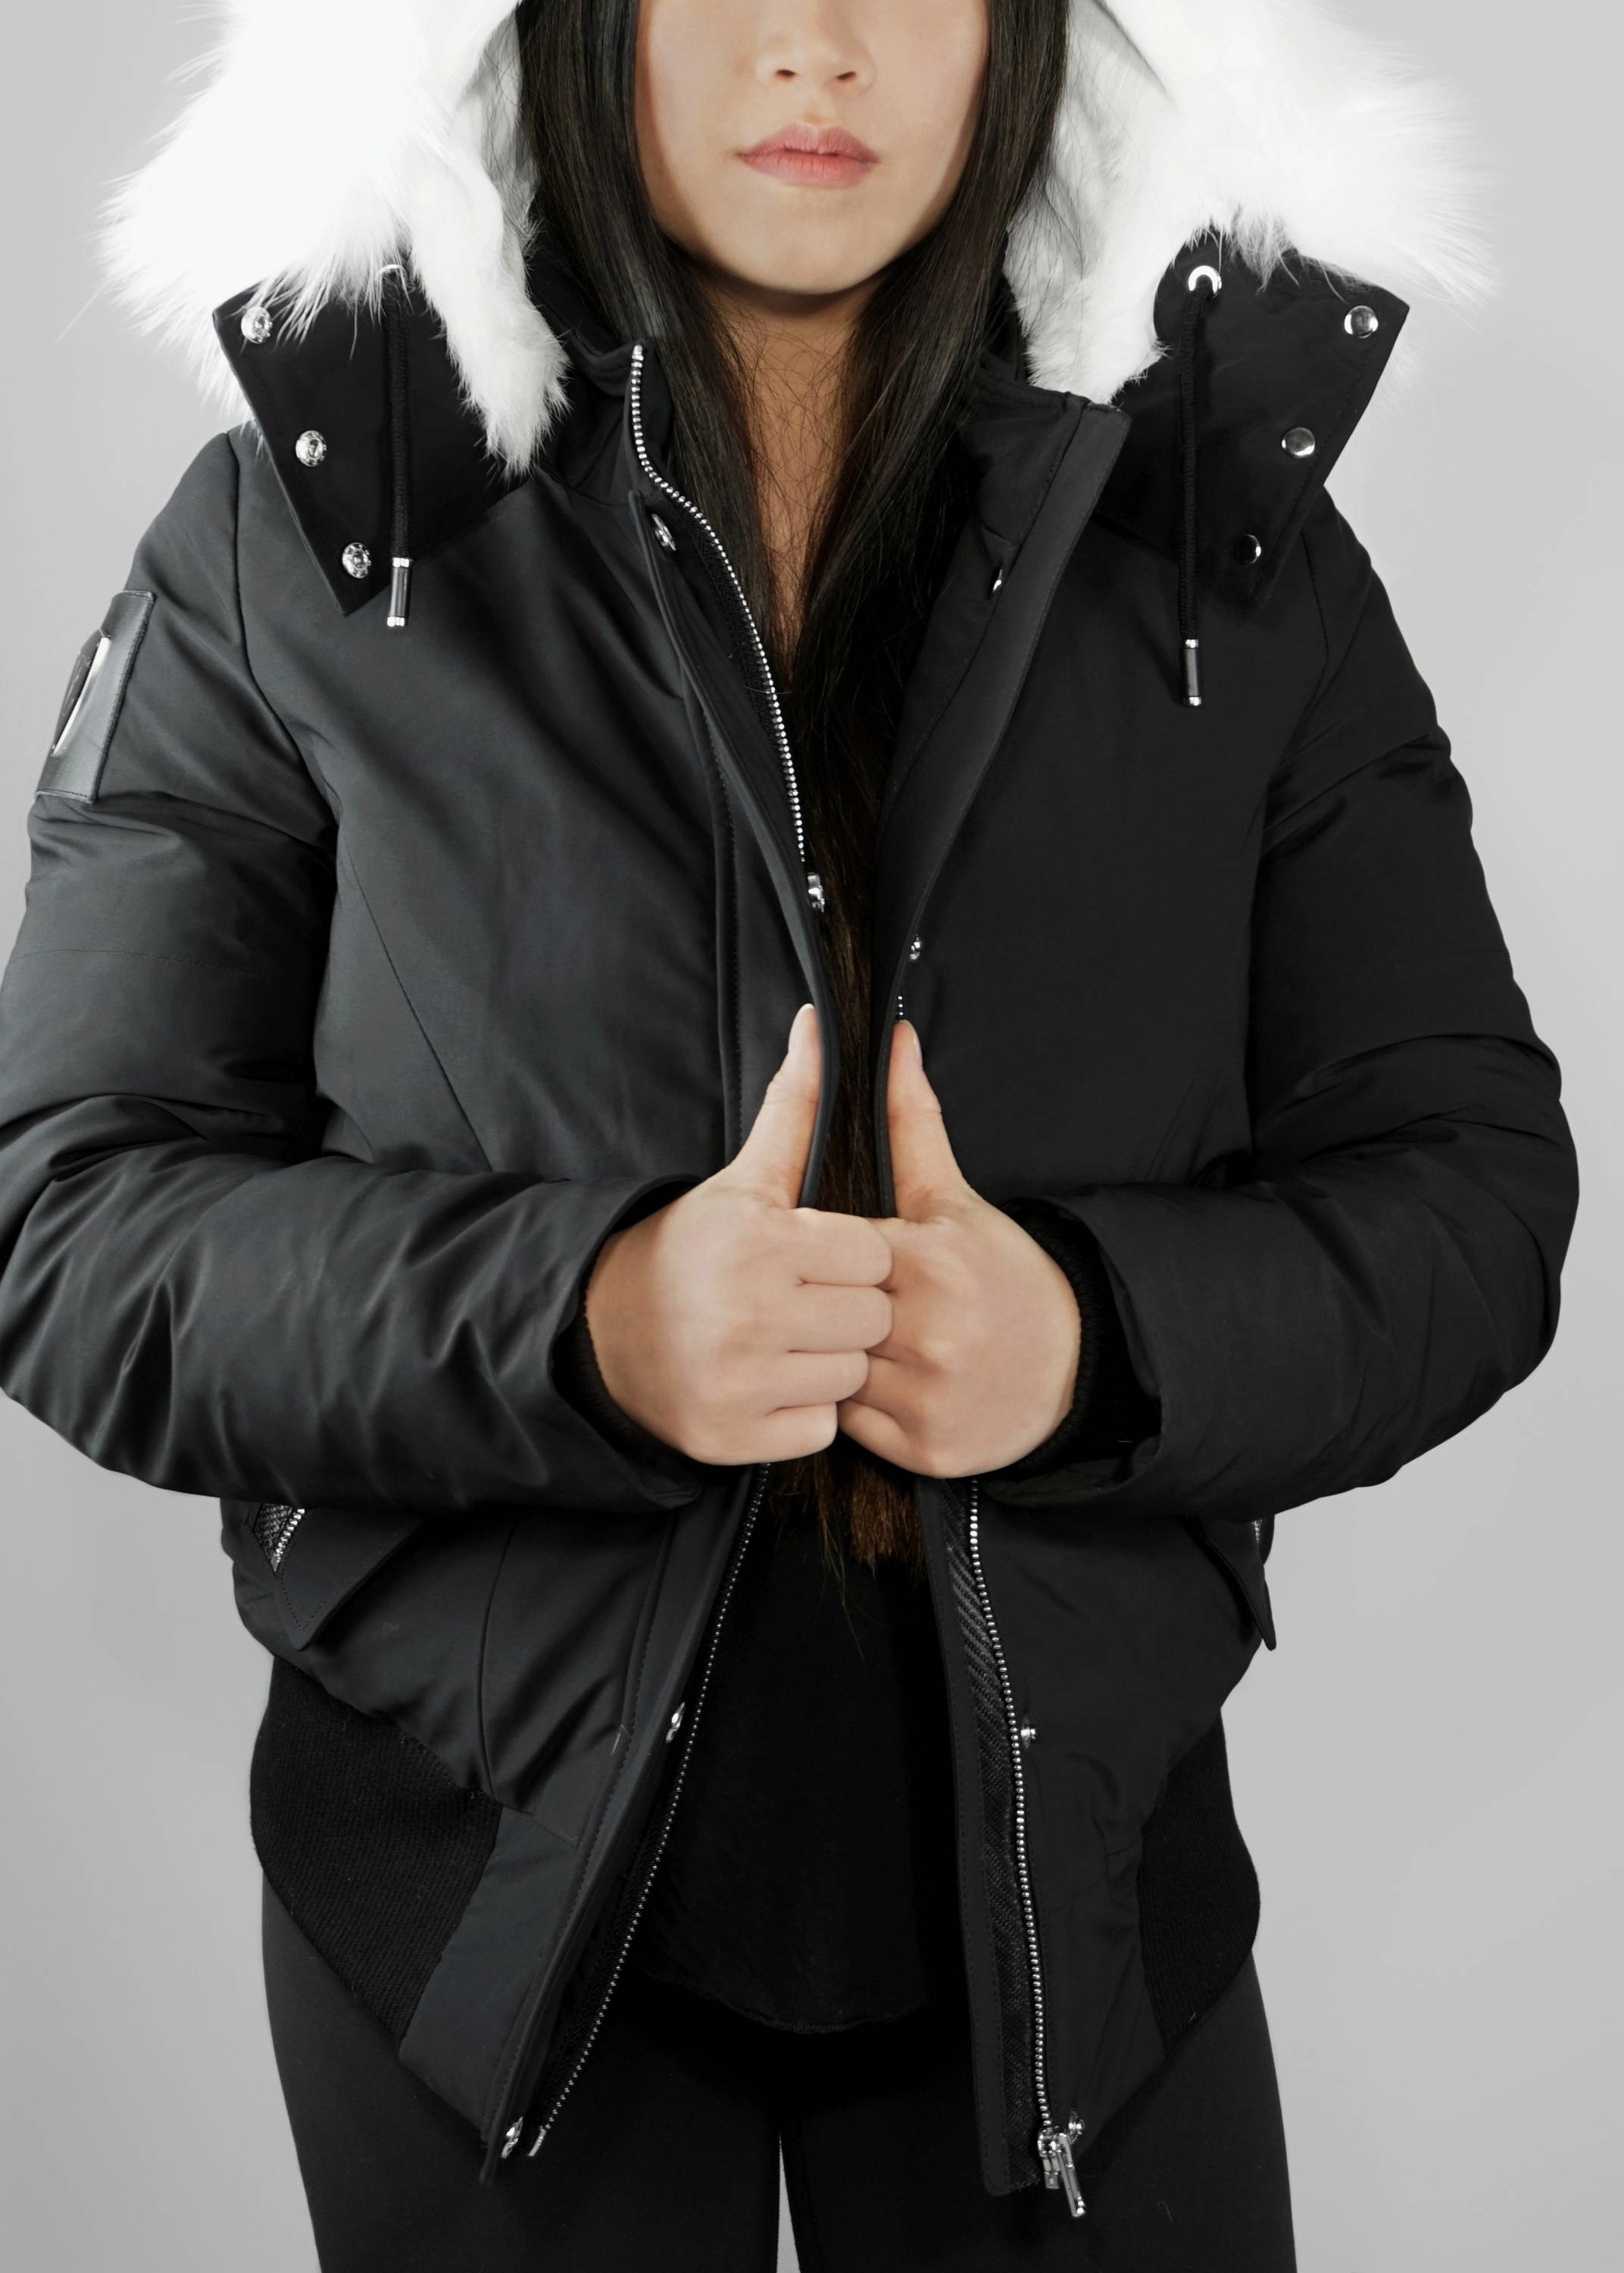 Carbonesque womens Bianca parka